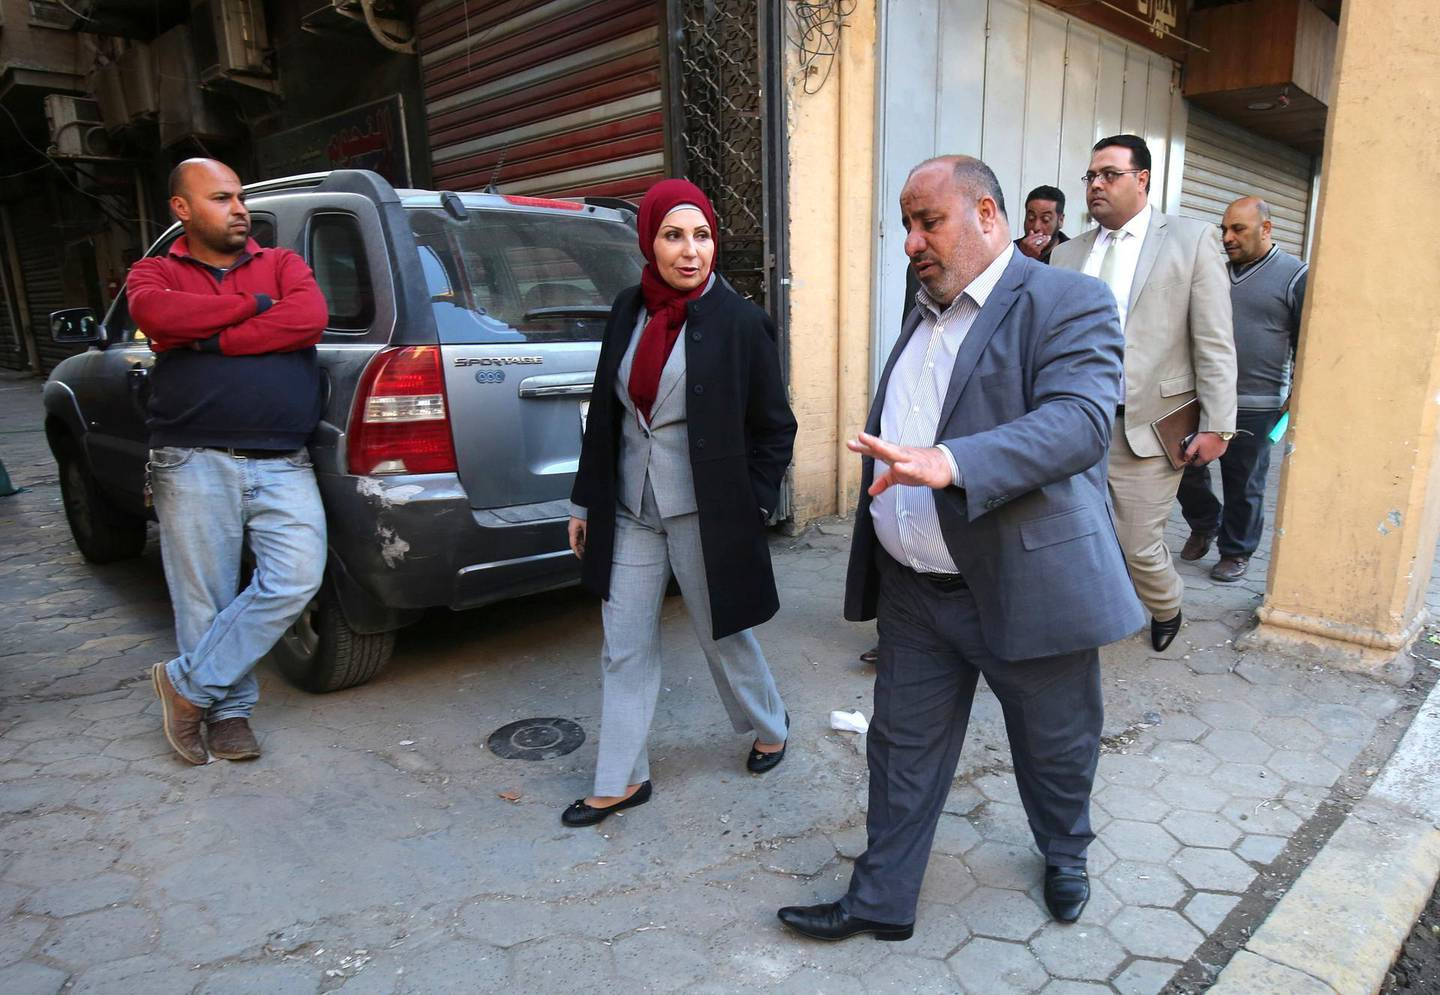 Baghdad Mayor Thikra Alwash, 60-year-old civil engineer and only woman mayor of a Middle East capital, speaks to civilians during a tour at al-Rashid street in the Iraqi capital on January 29, 2018. Thikra wants to revive her war-torn city, fix its decrepit infrastructure and twin it with Paris -- another female-led metropolis. / AFP PHOTO / AHMAD AL-RUBAYE